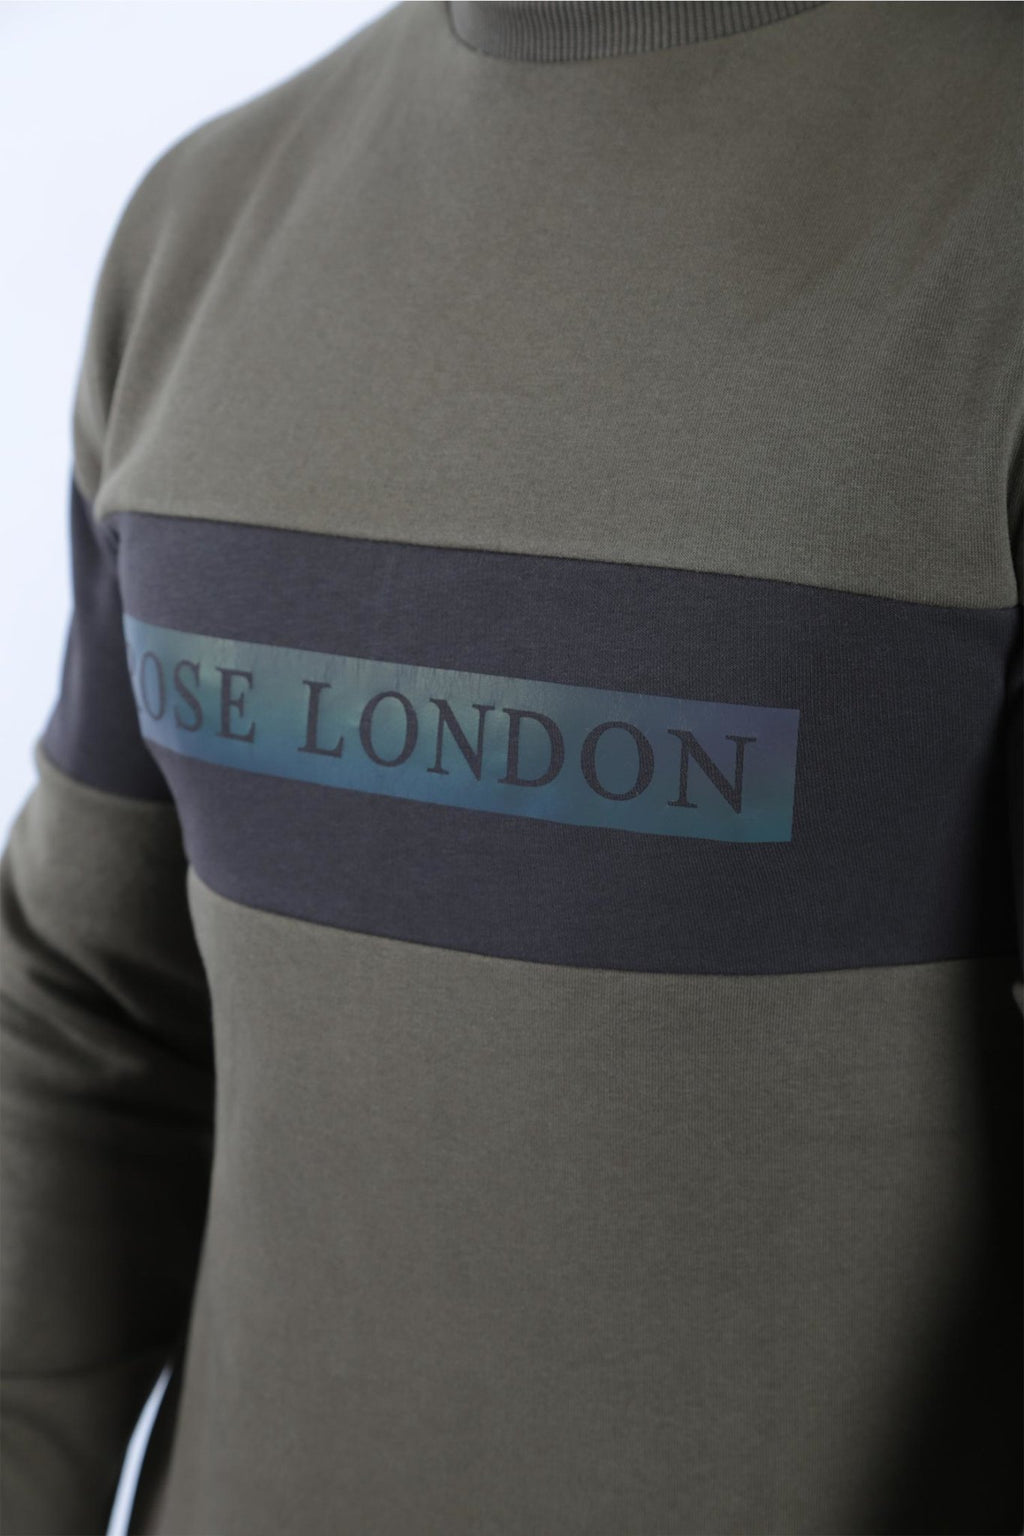 Rose London Iridescent Print Sweatshirt Khaki - Rose London